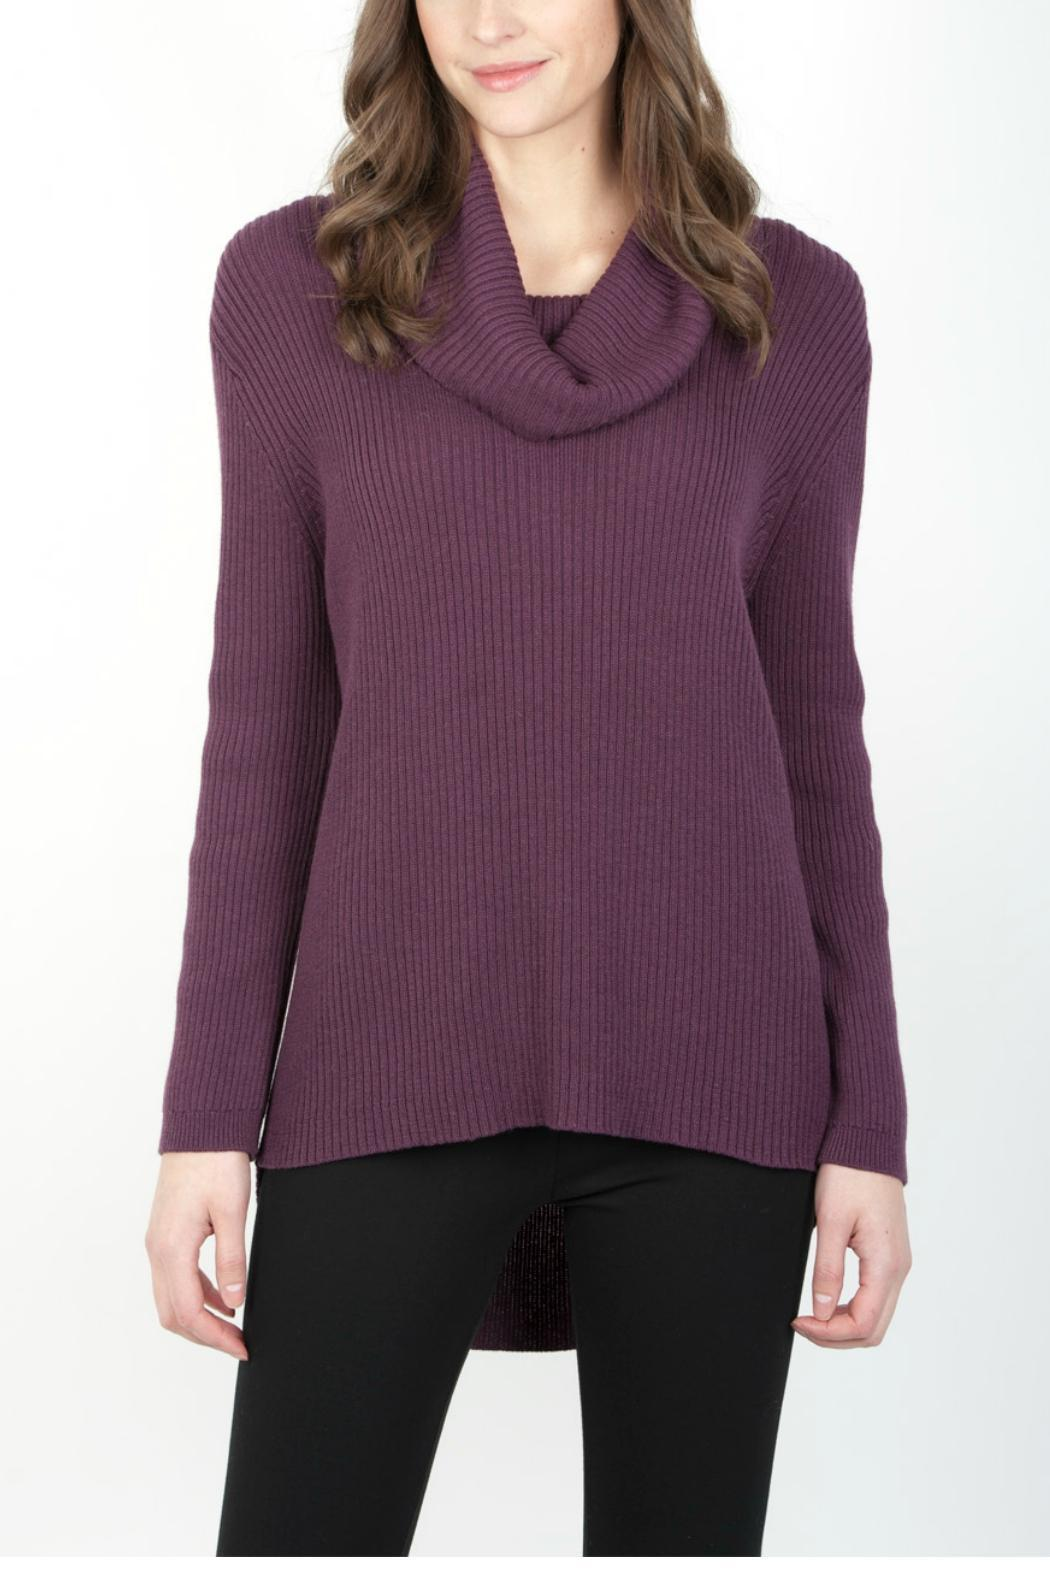 orb cowl neck sweater from oregon by the clothes tree